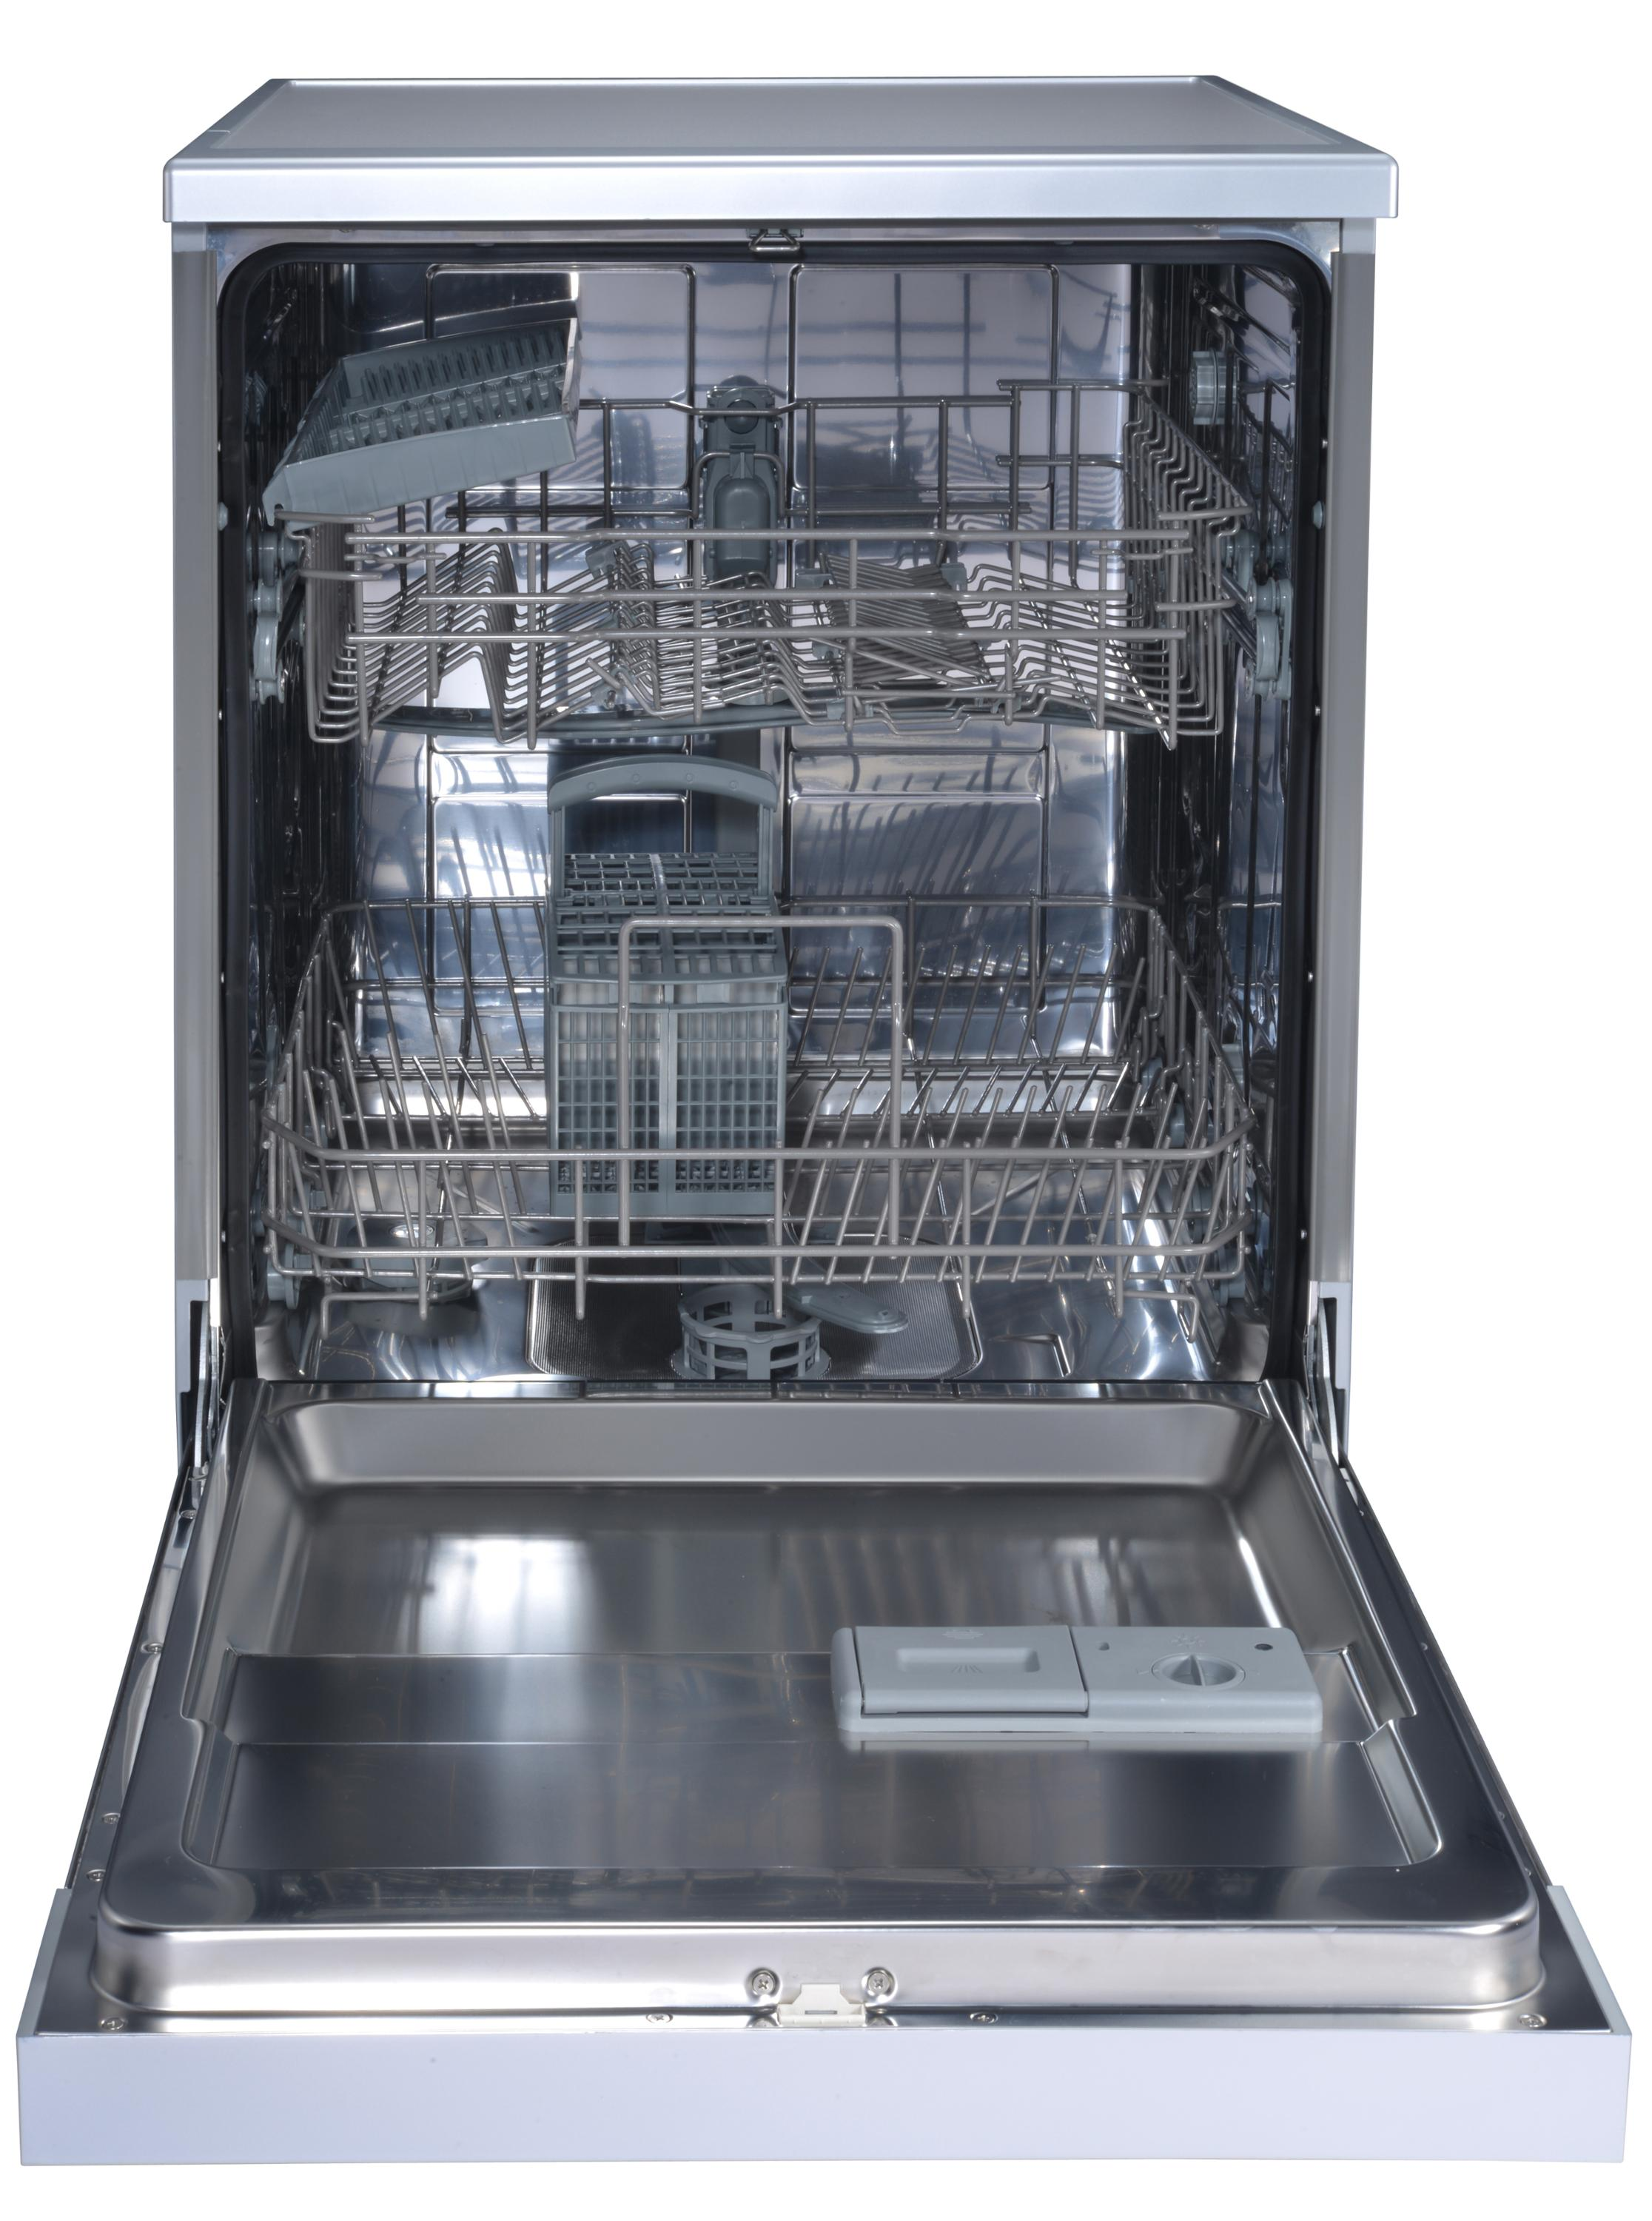 Dishwasher (2).jpg